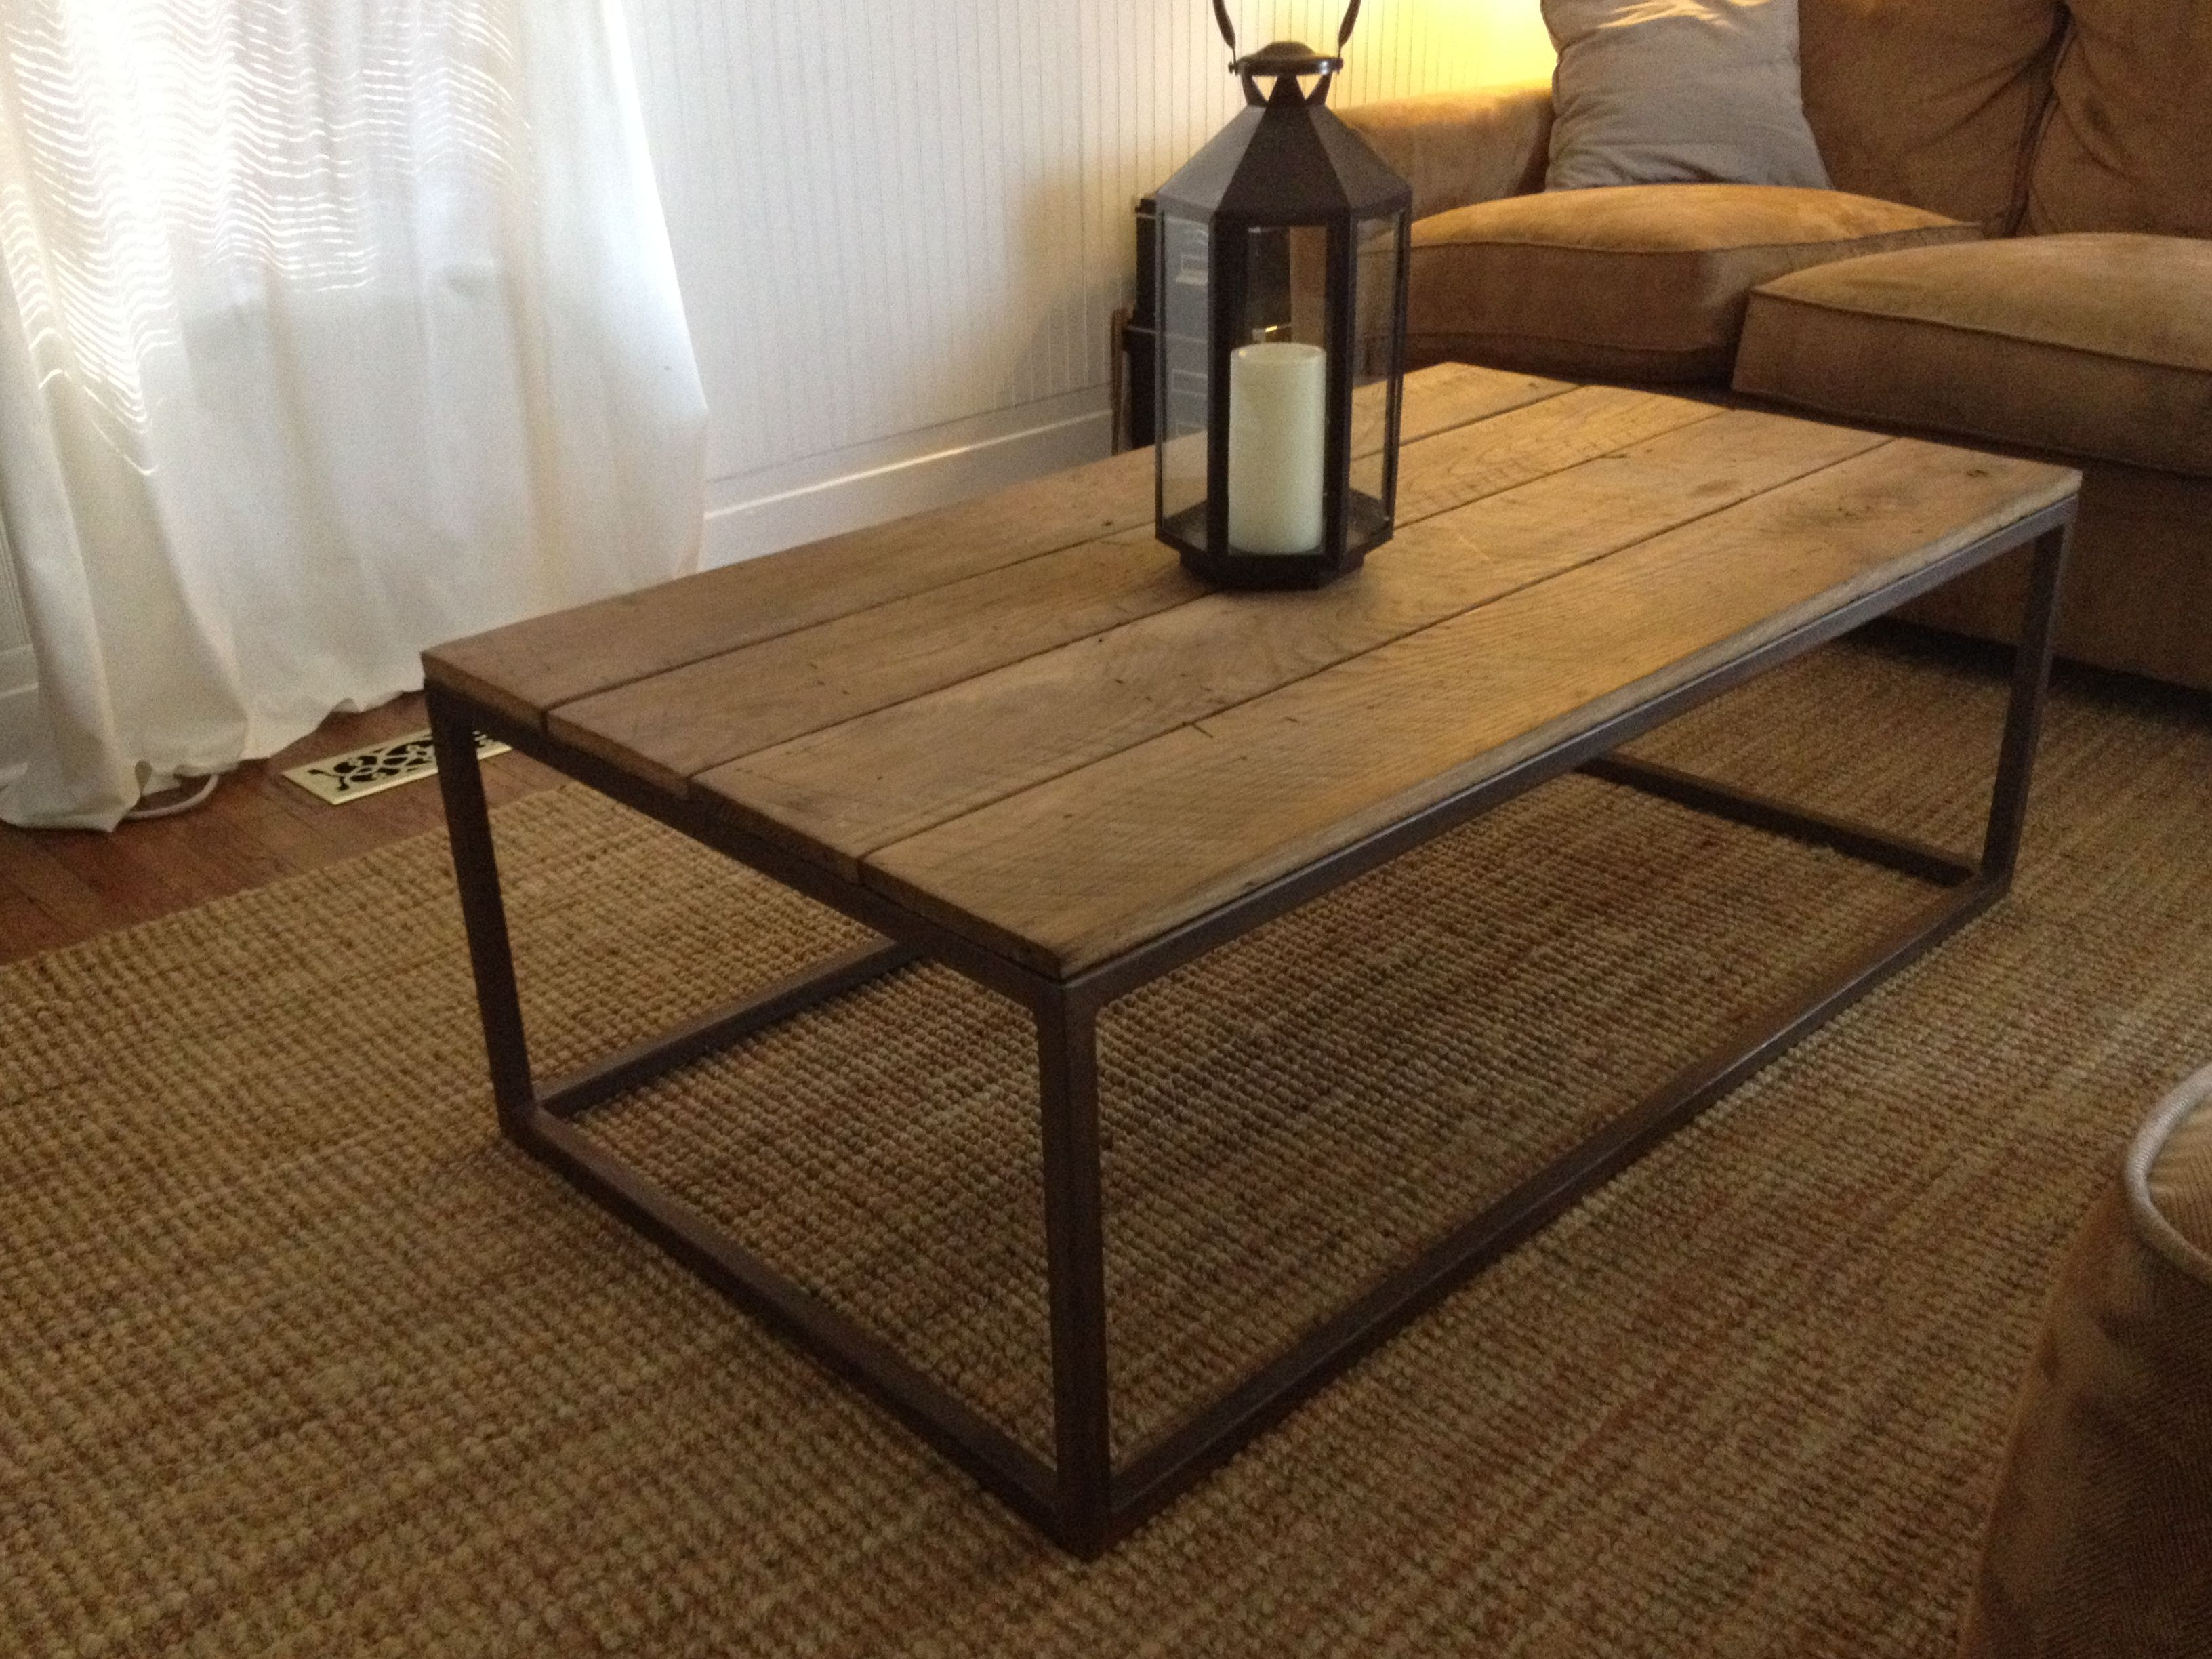 Welded Base Coffee Table Etsy Wood Sofa Table Coffee Table Industrial Style Coffee Table [ 2448 x 3264 Pixel ]